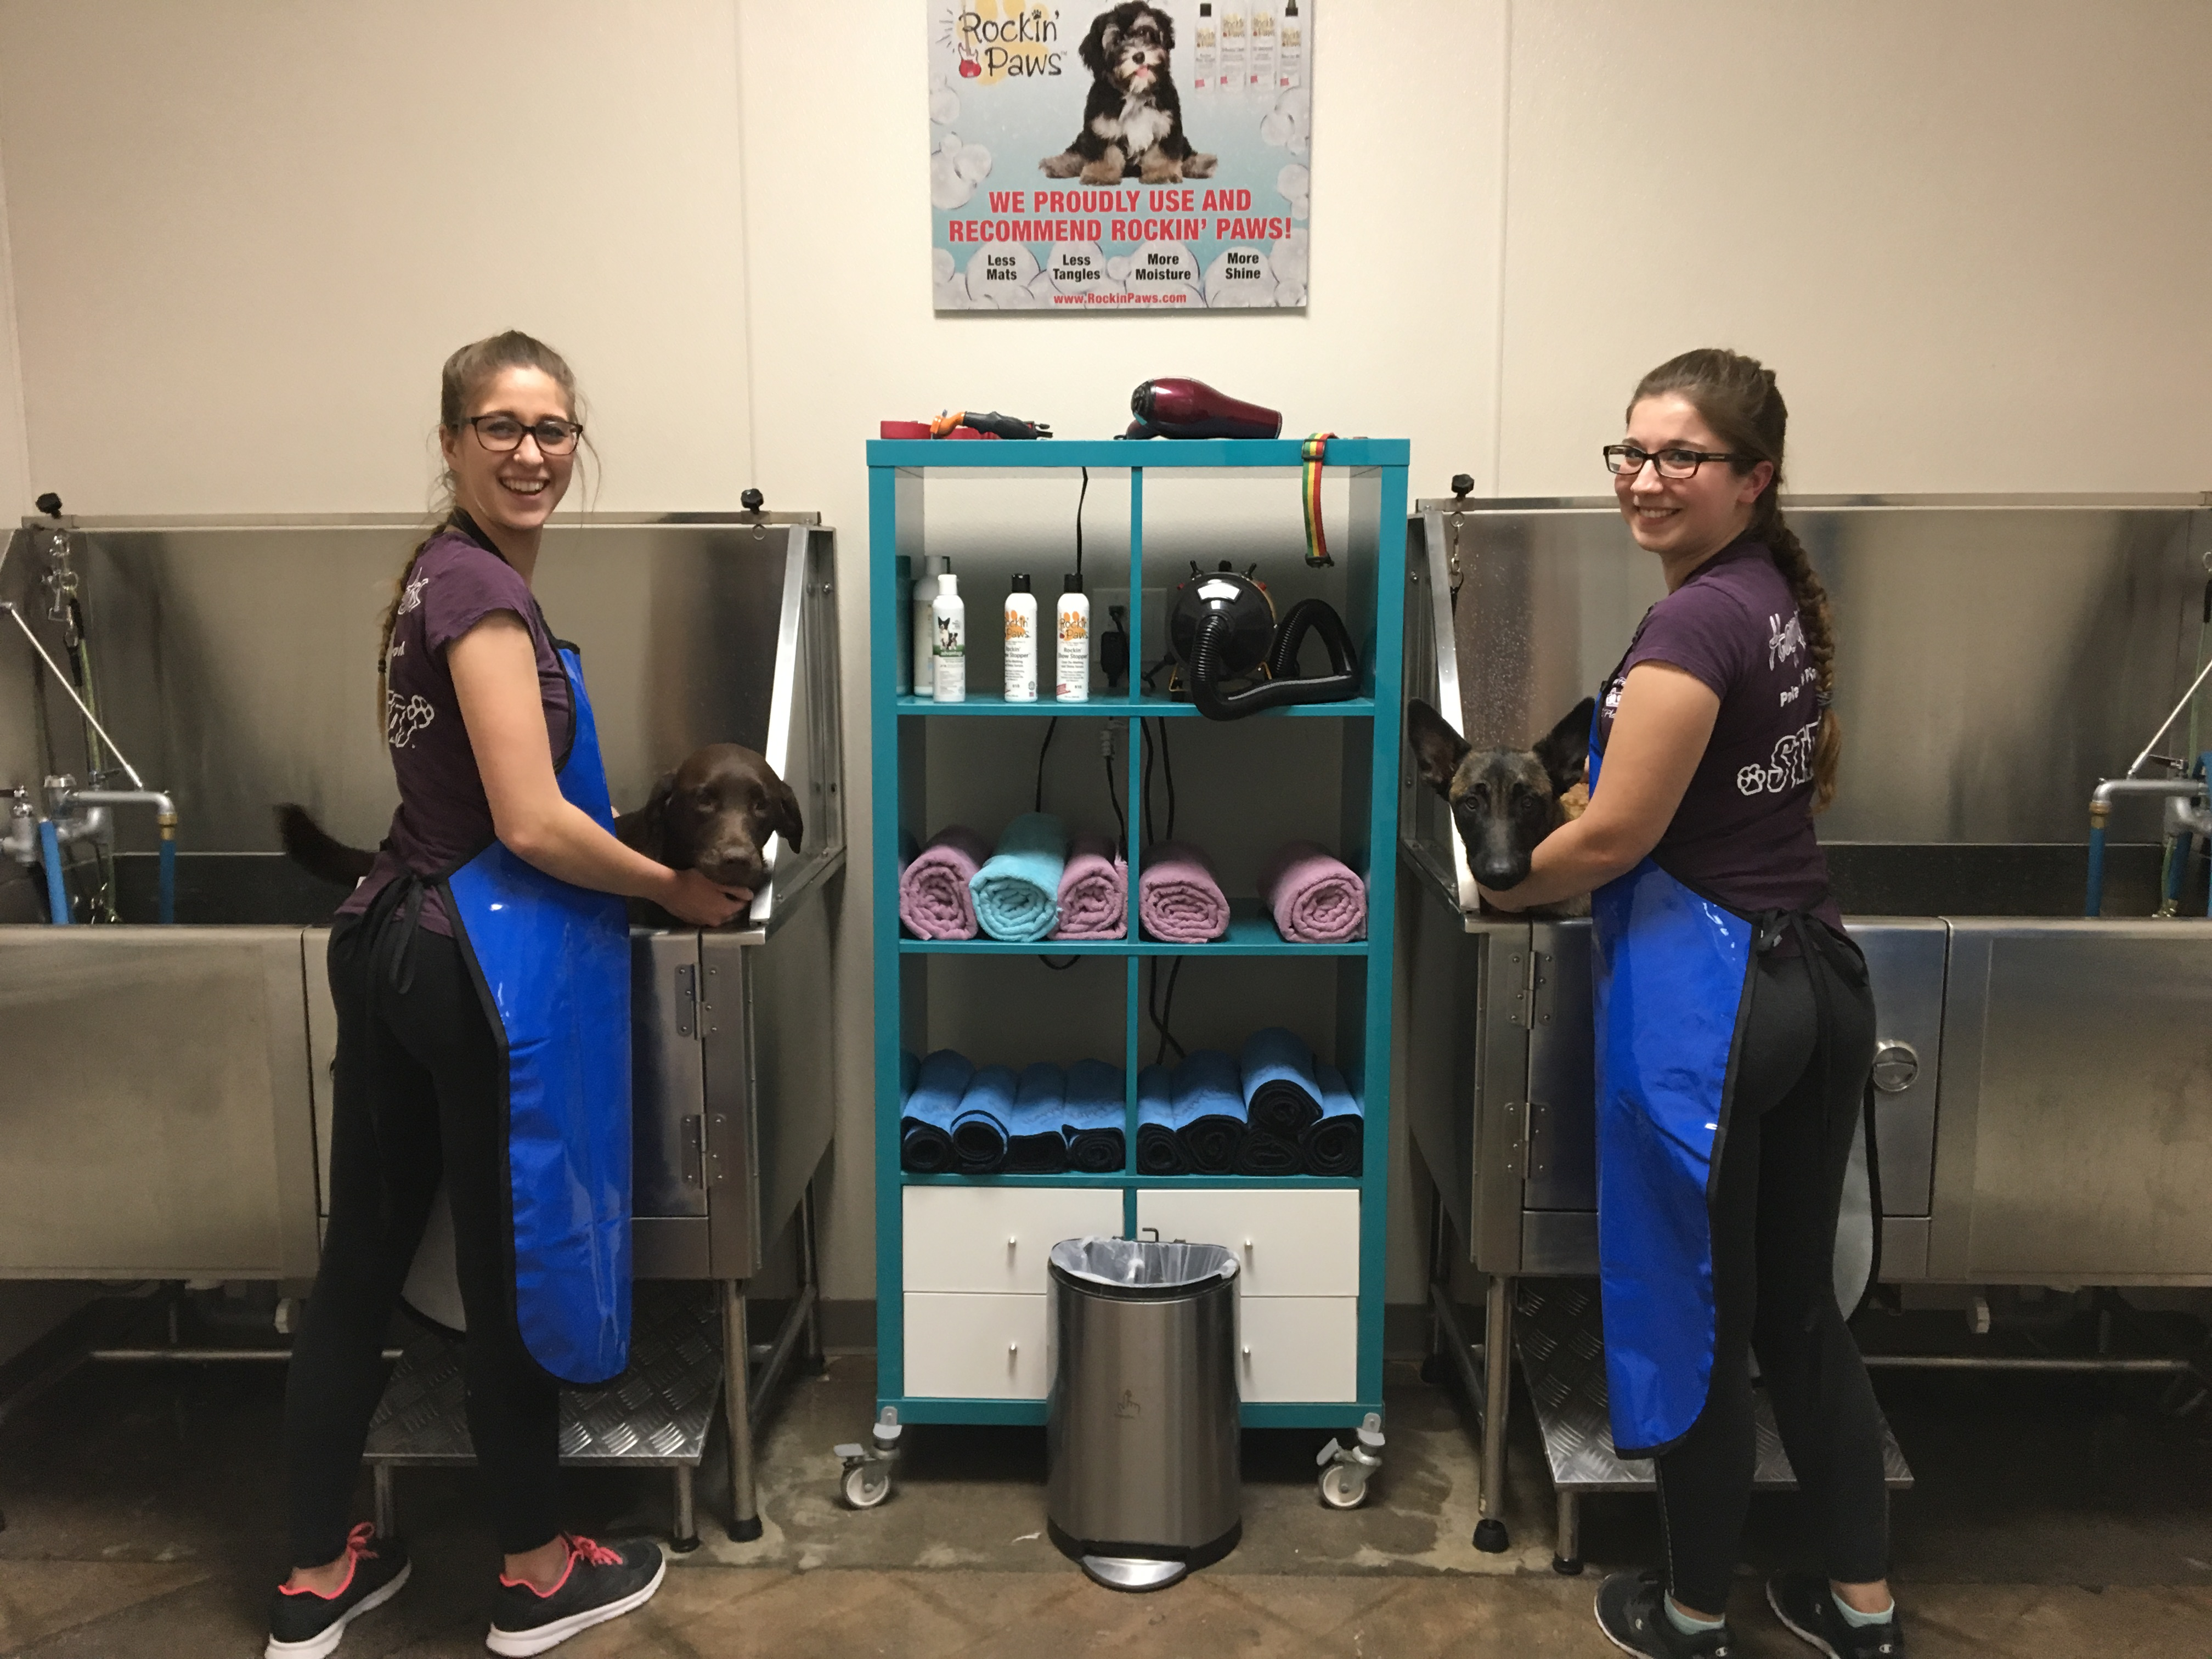 Dog wash happy pets palace come check out our self service dog wash where we provide you a clean and spacious area where you can comfortably wash your dog solutioingenieria Gallery